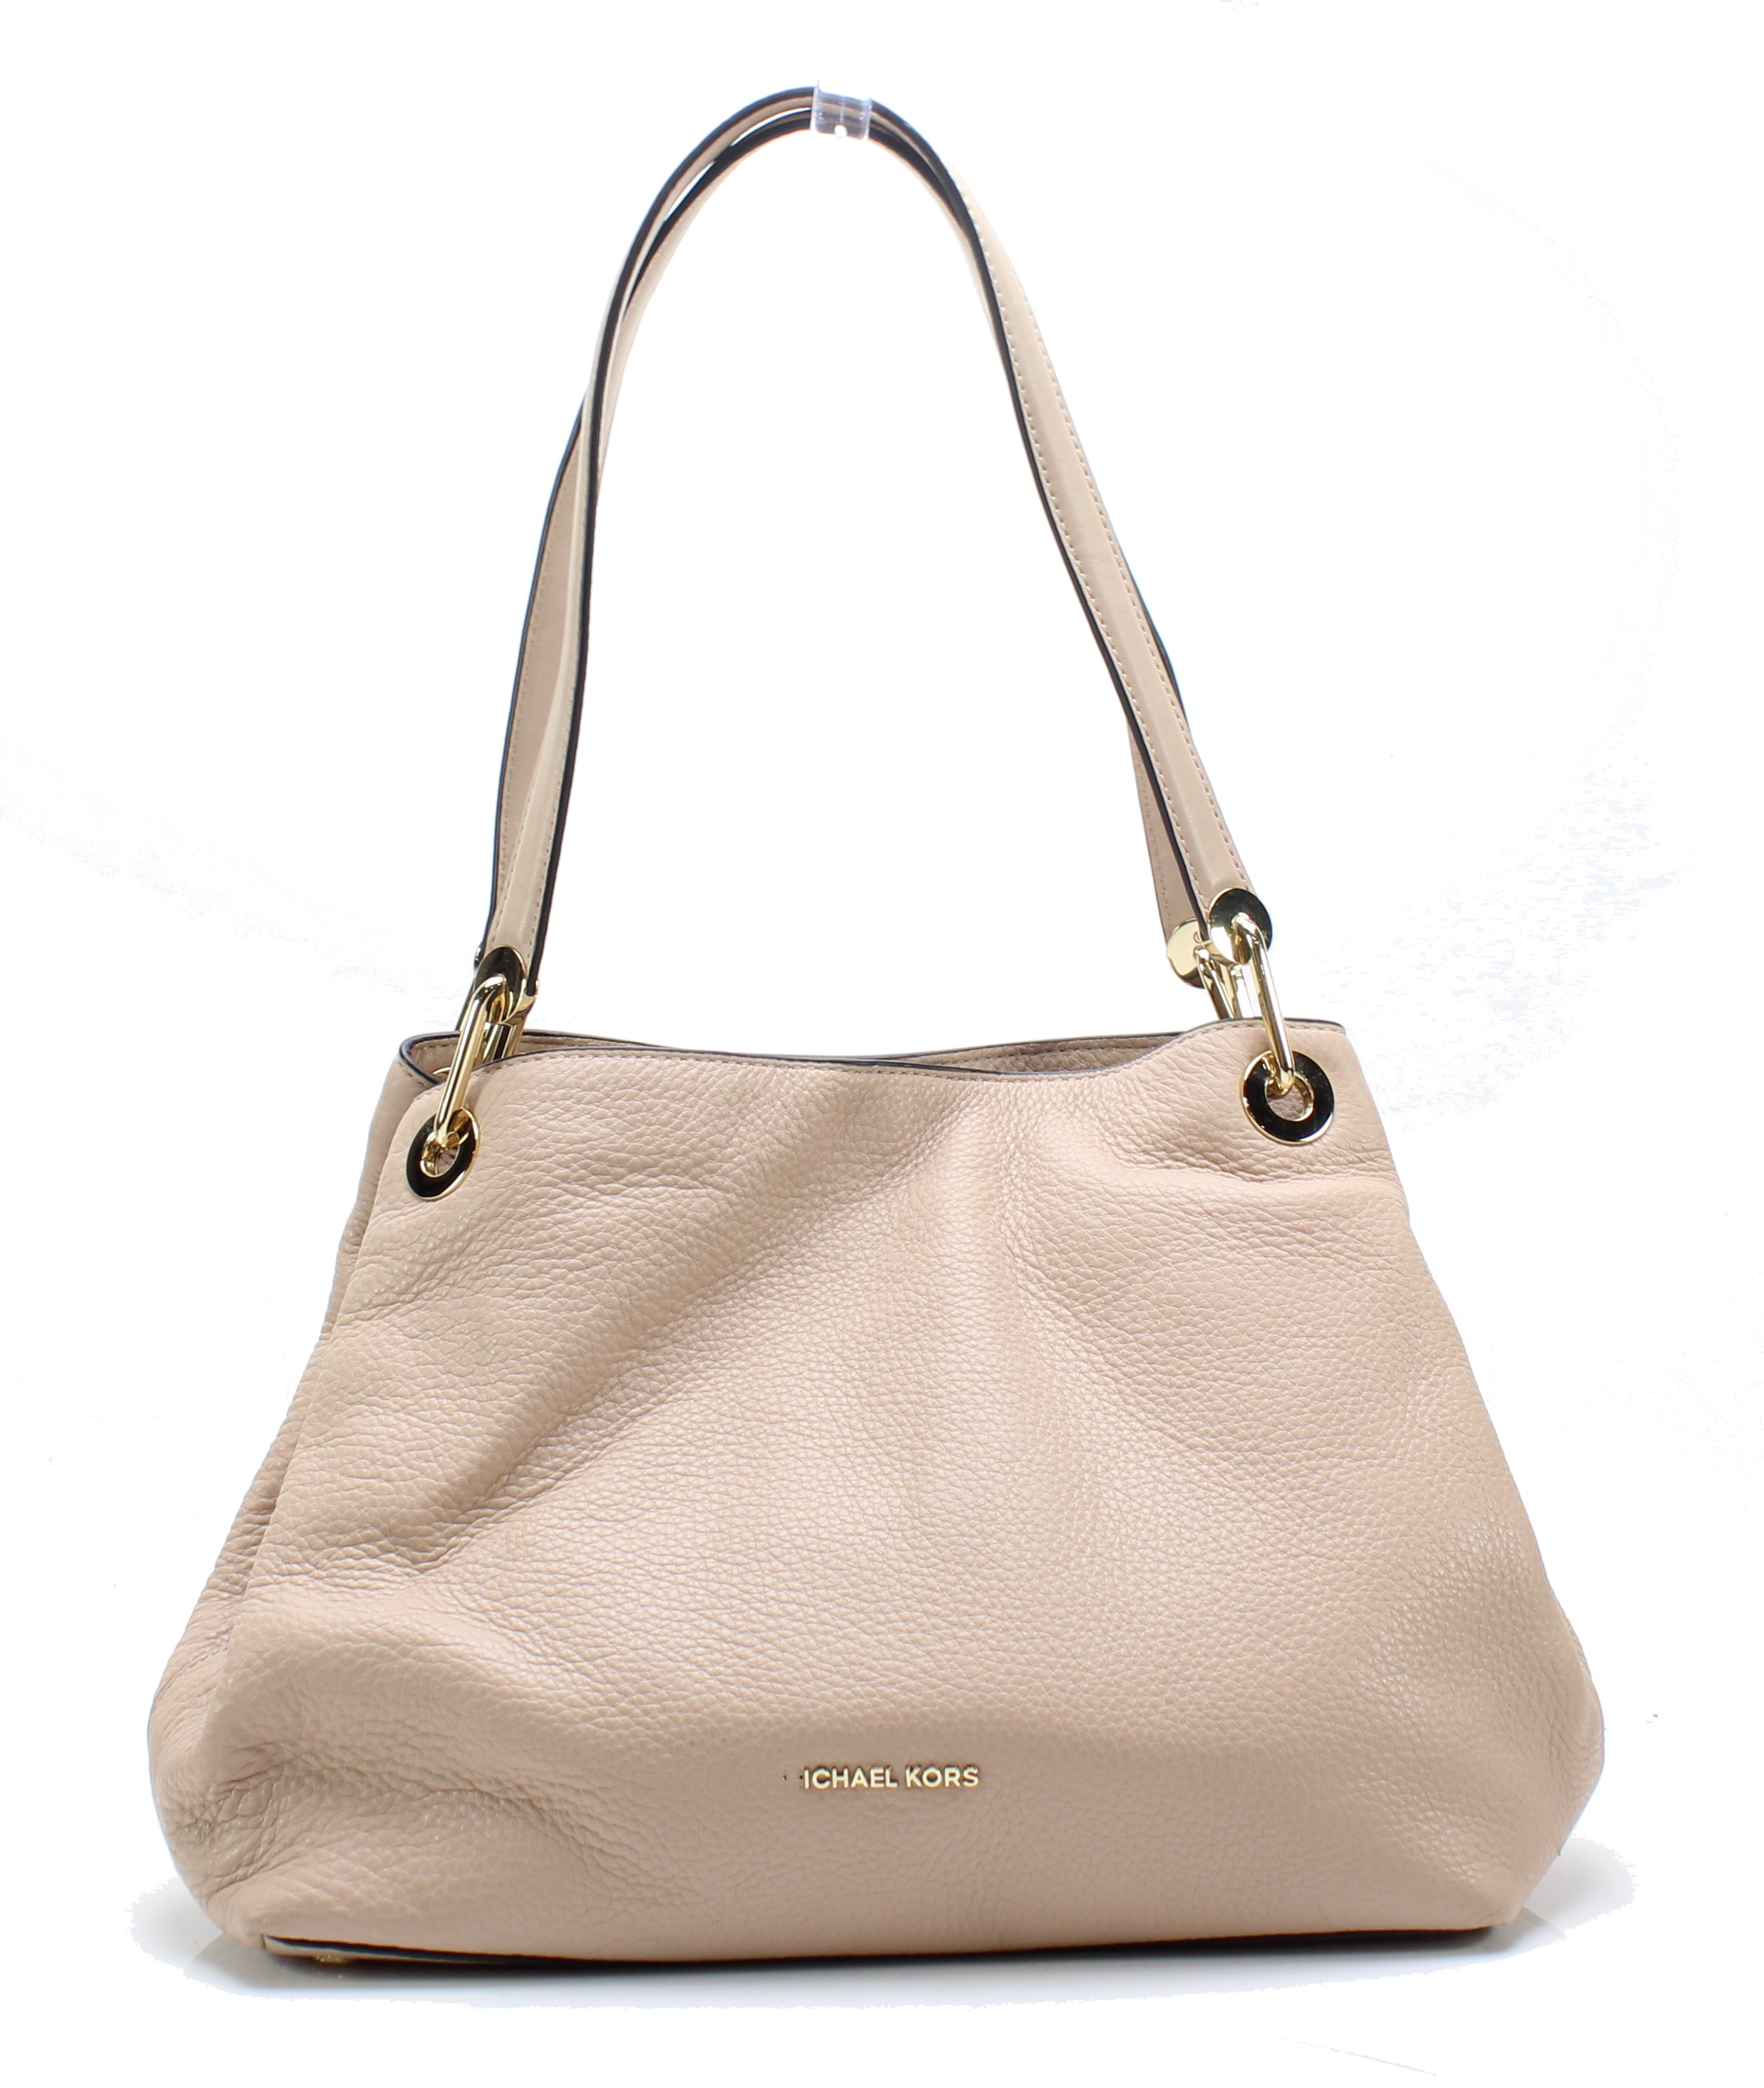 588423cd107d Details about Michael Kors NEW Oyster Gold Raven Large Pebble Leather Tote  Bag $298- #059